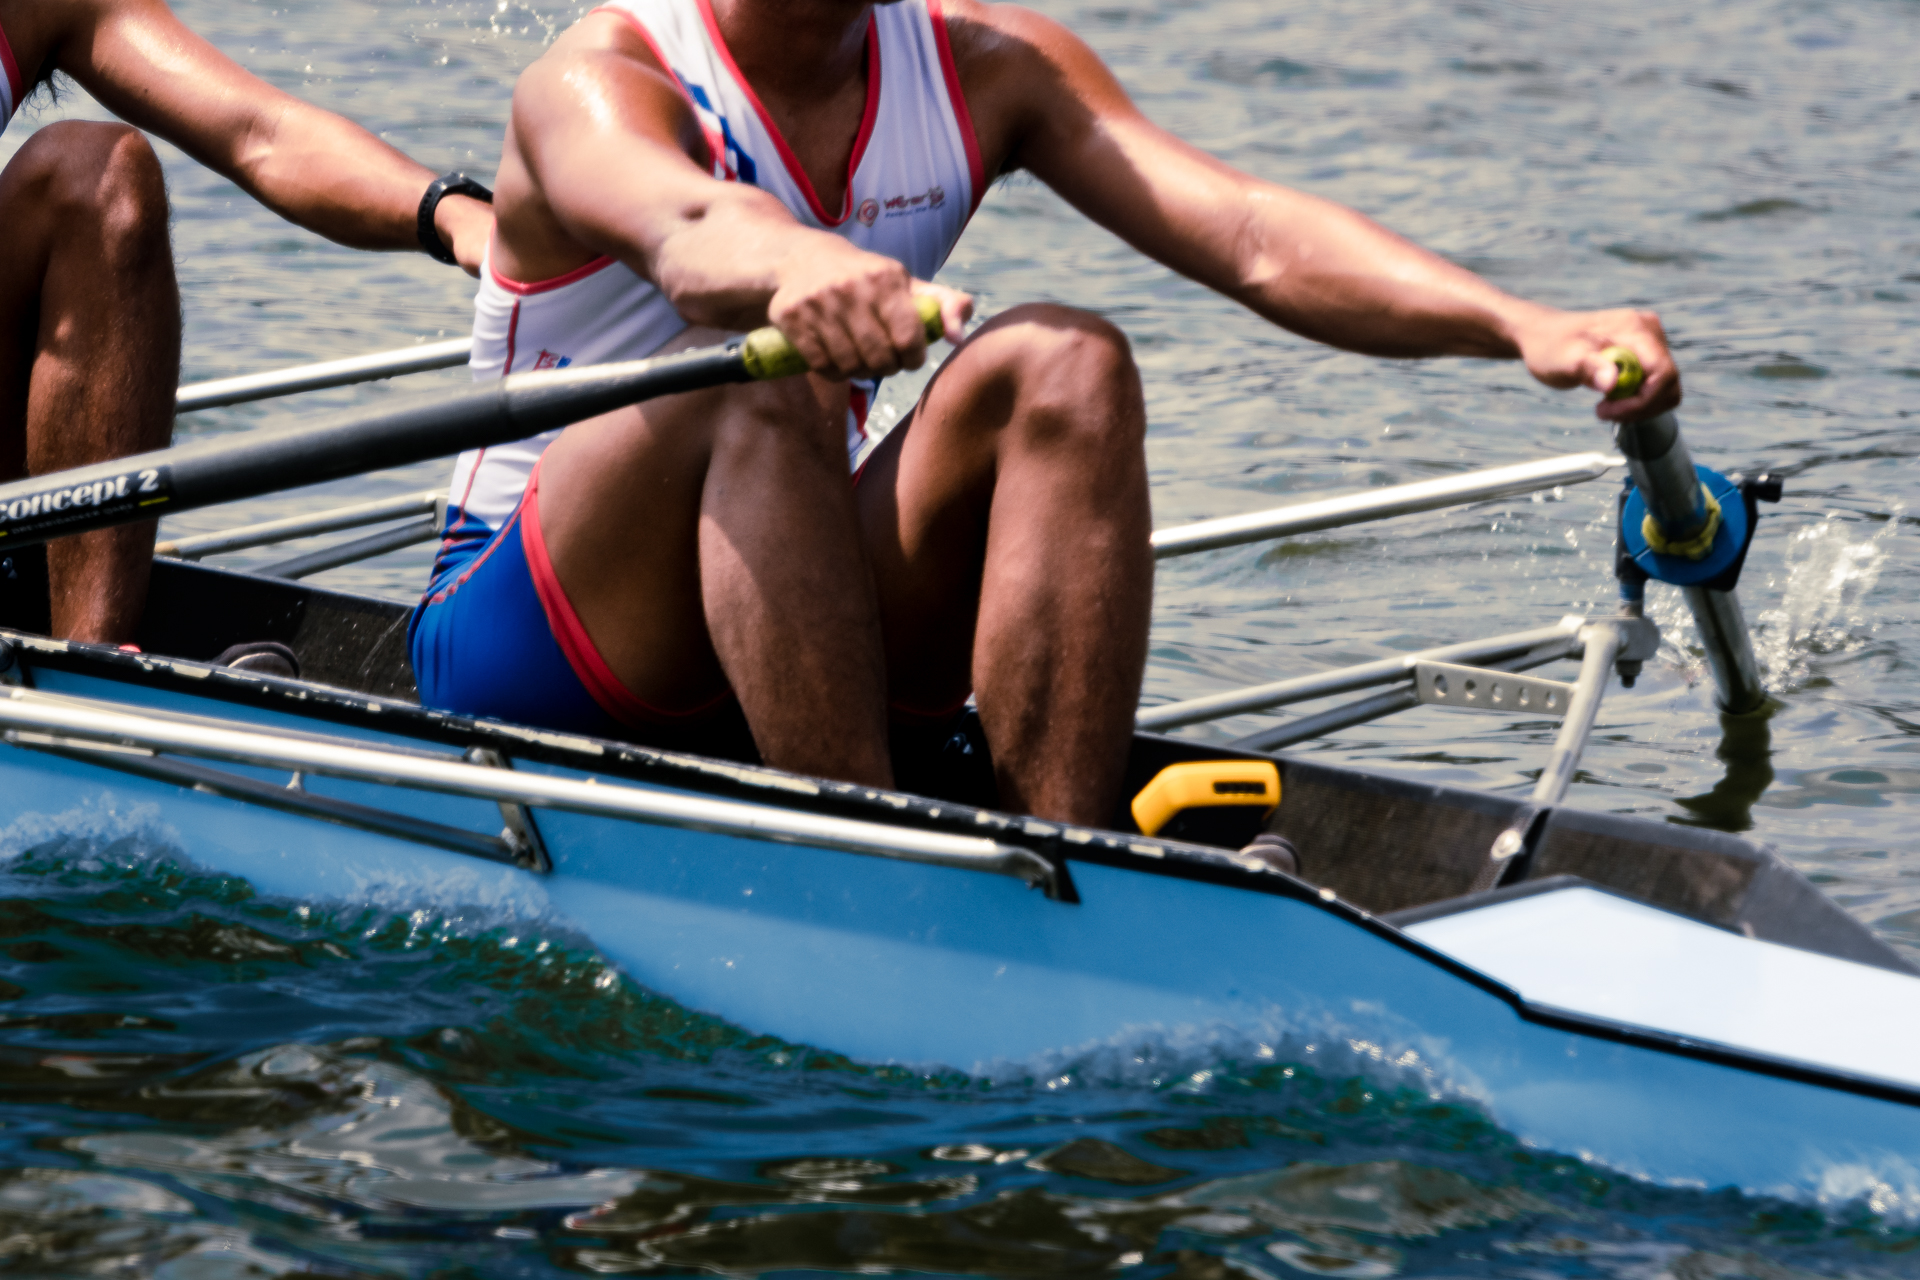 Details of the boats and oars used by the Philippine National Rowing Team